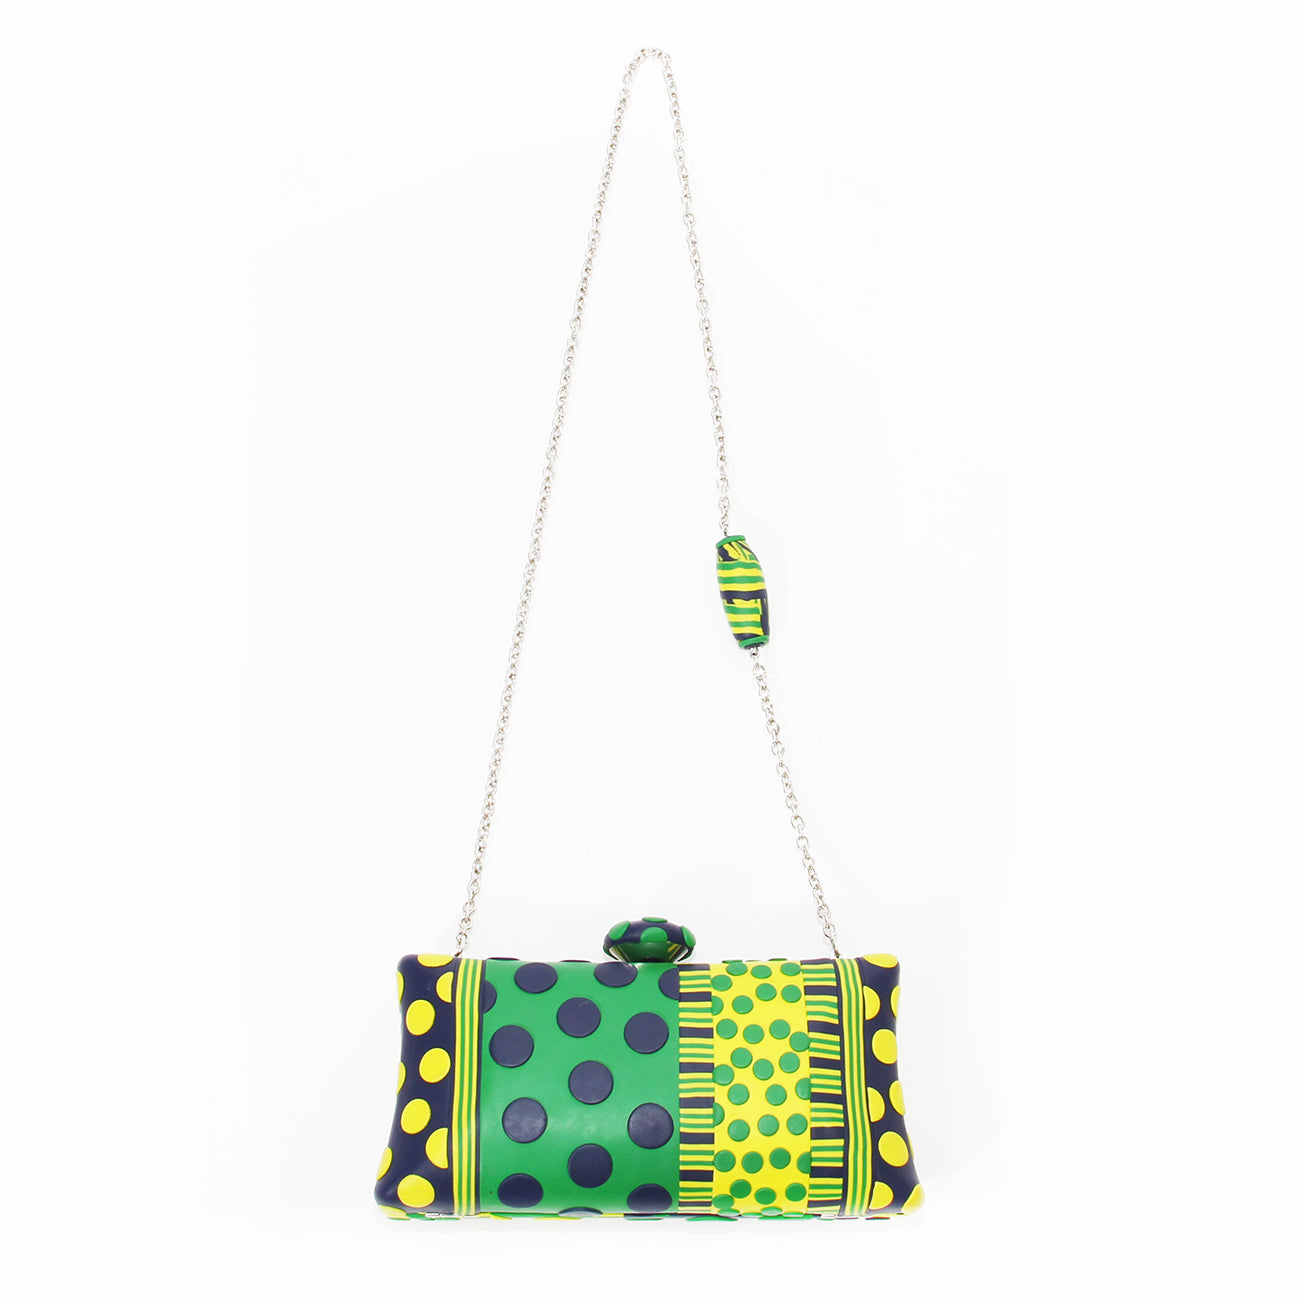 Ronnie Kirsch Polka Dot Clutch